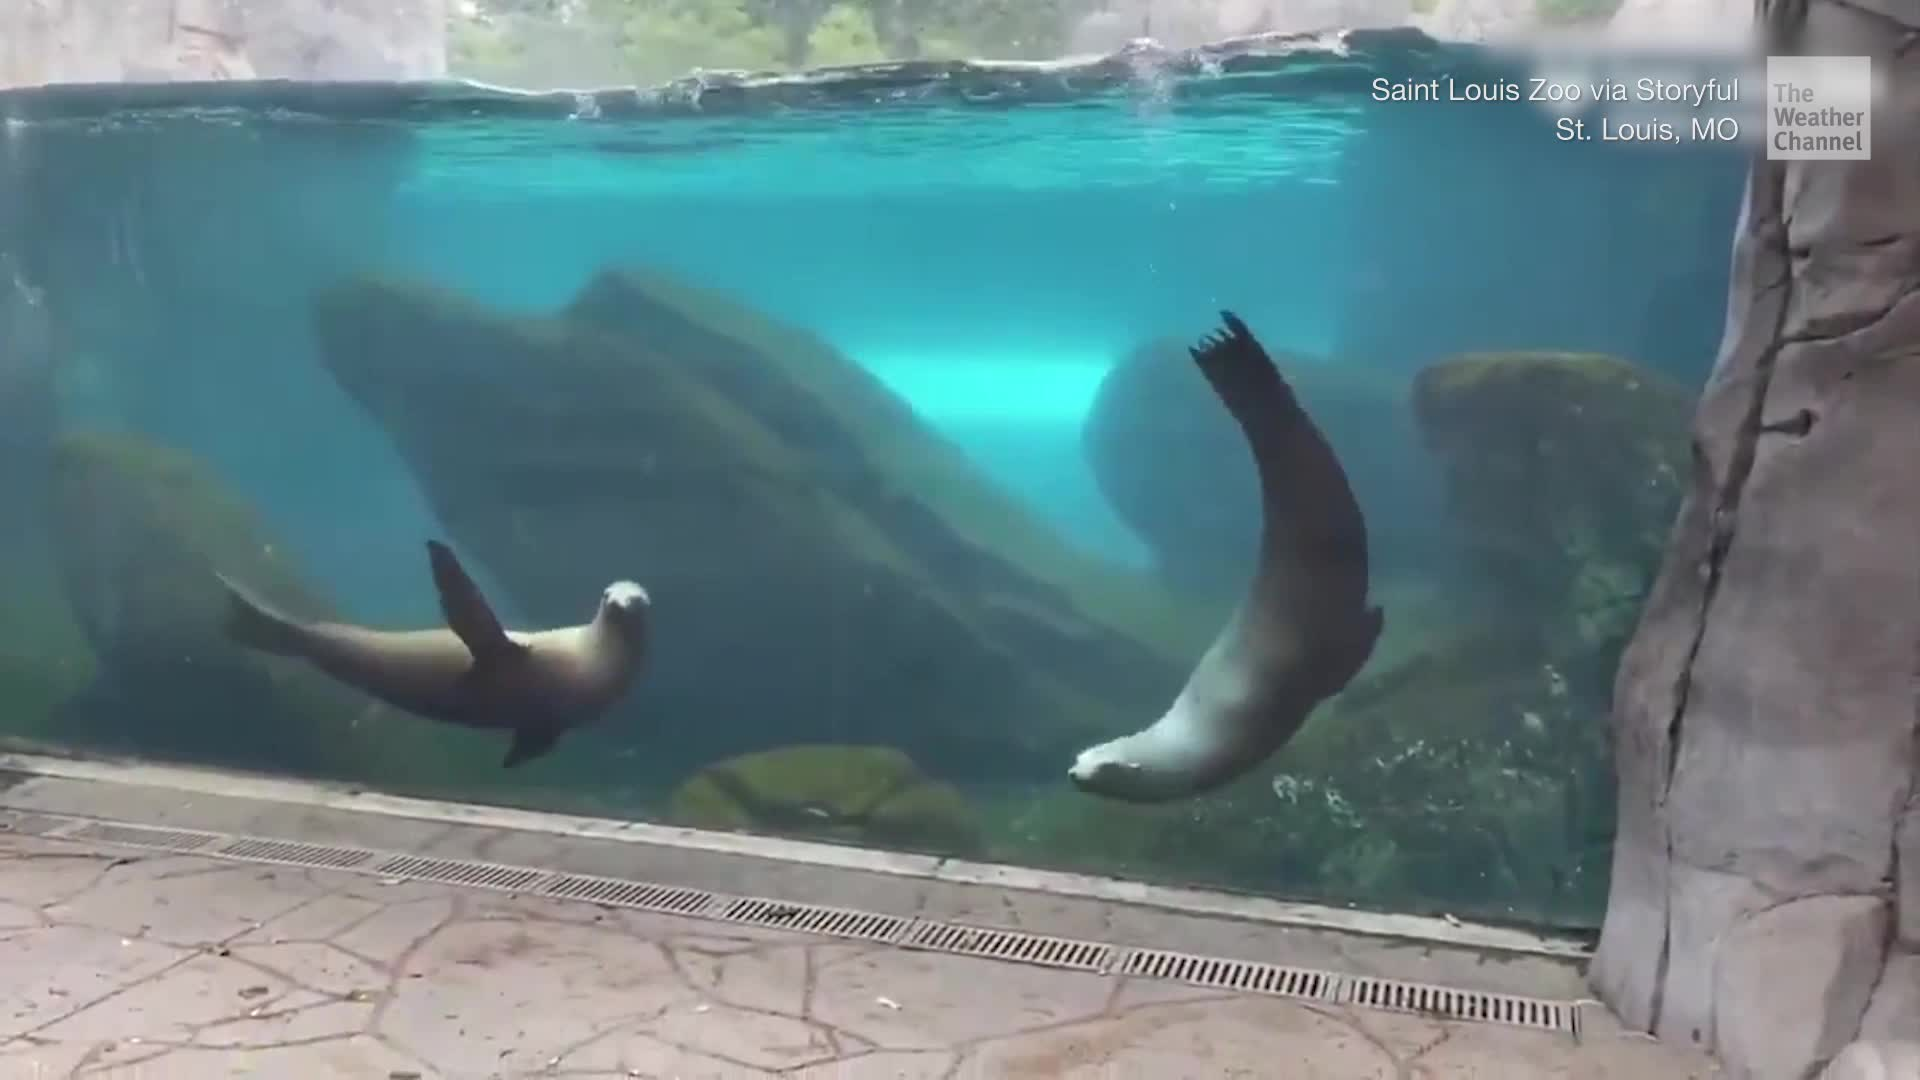 Sea lions at the St. Louis Zoo in Missouri got some much needed mental and physical stimulation from a remote control car.